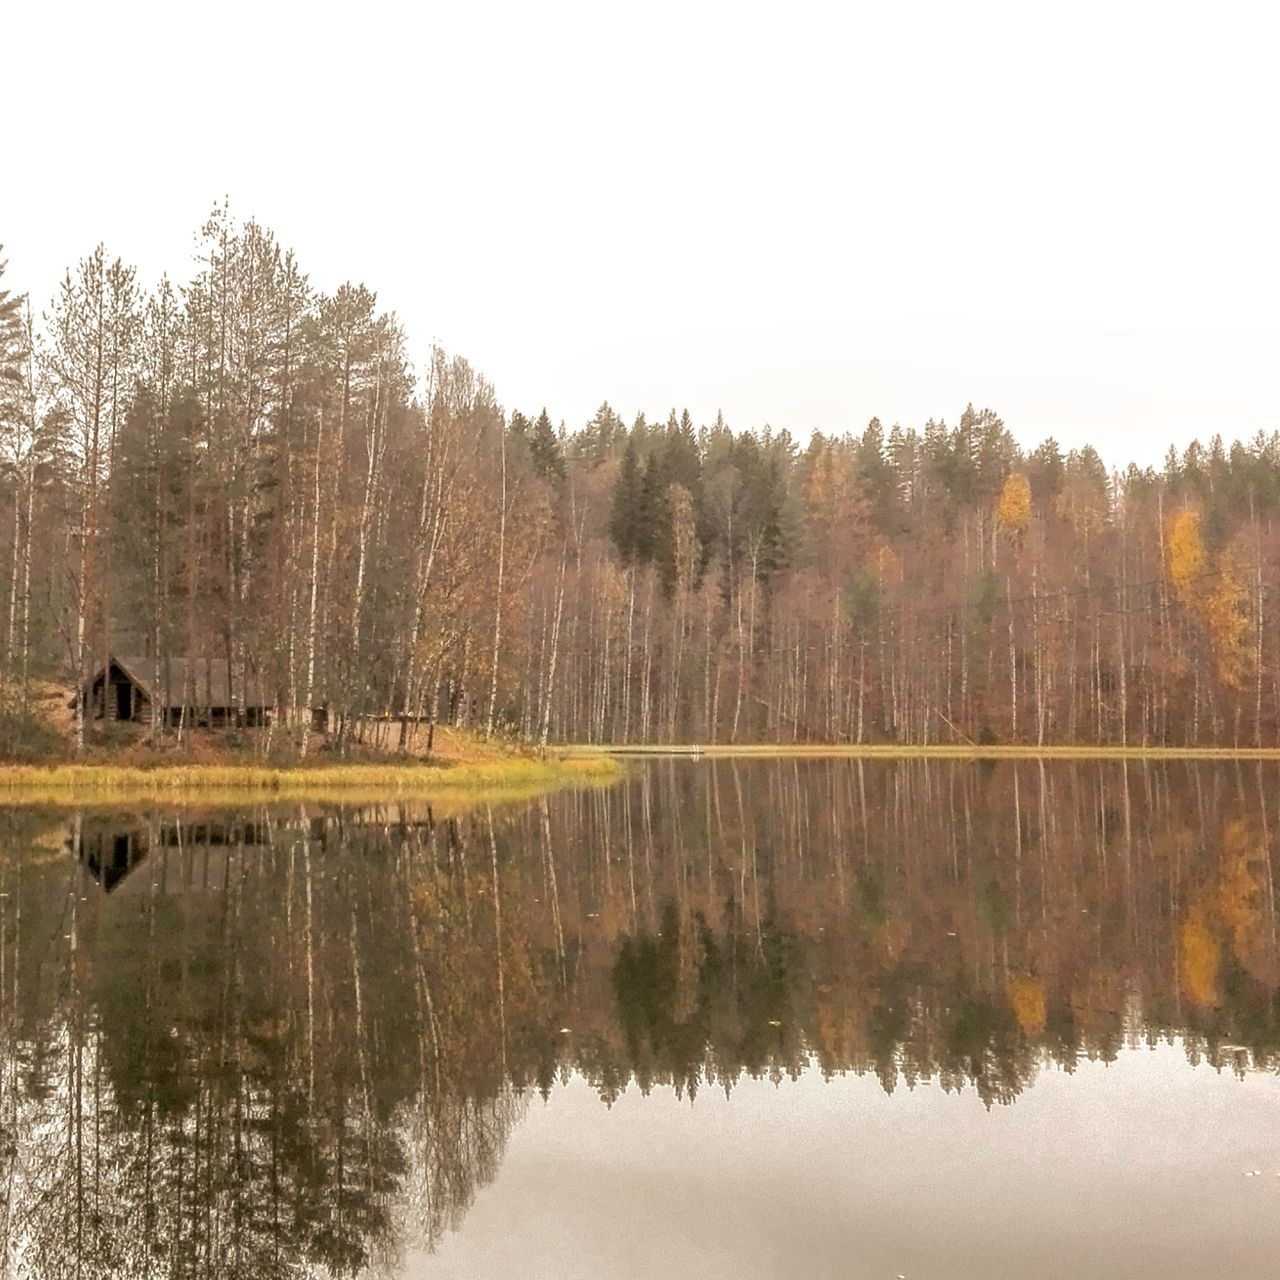 Autumn Naturebeauty Colourful Outdoors Naturelovers Photography Landscape_photography Nature Photography Photographer Finnish Nature Beautiful Nature Water